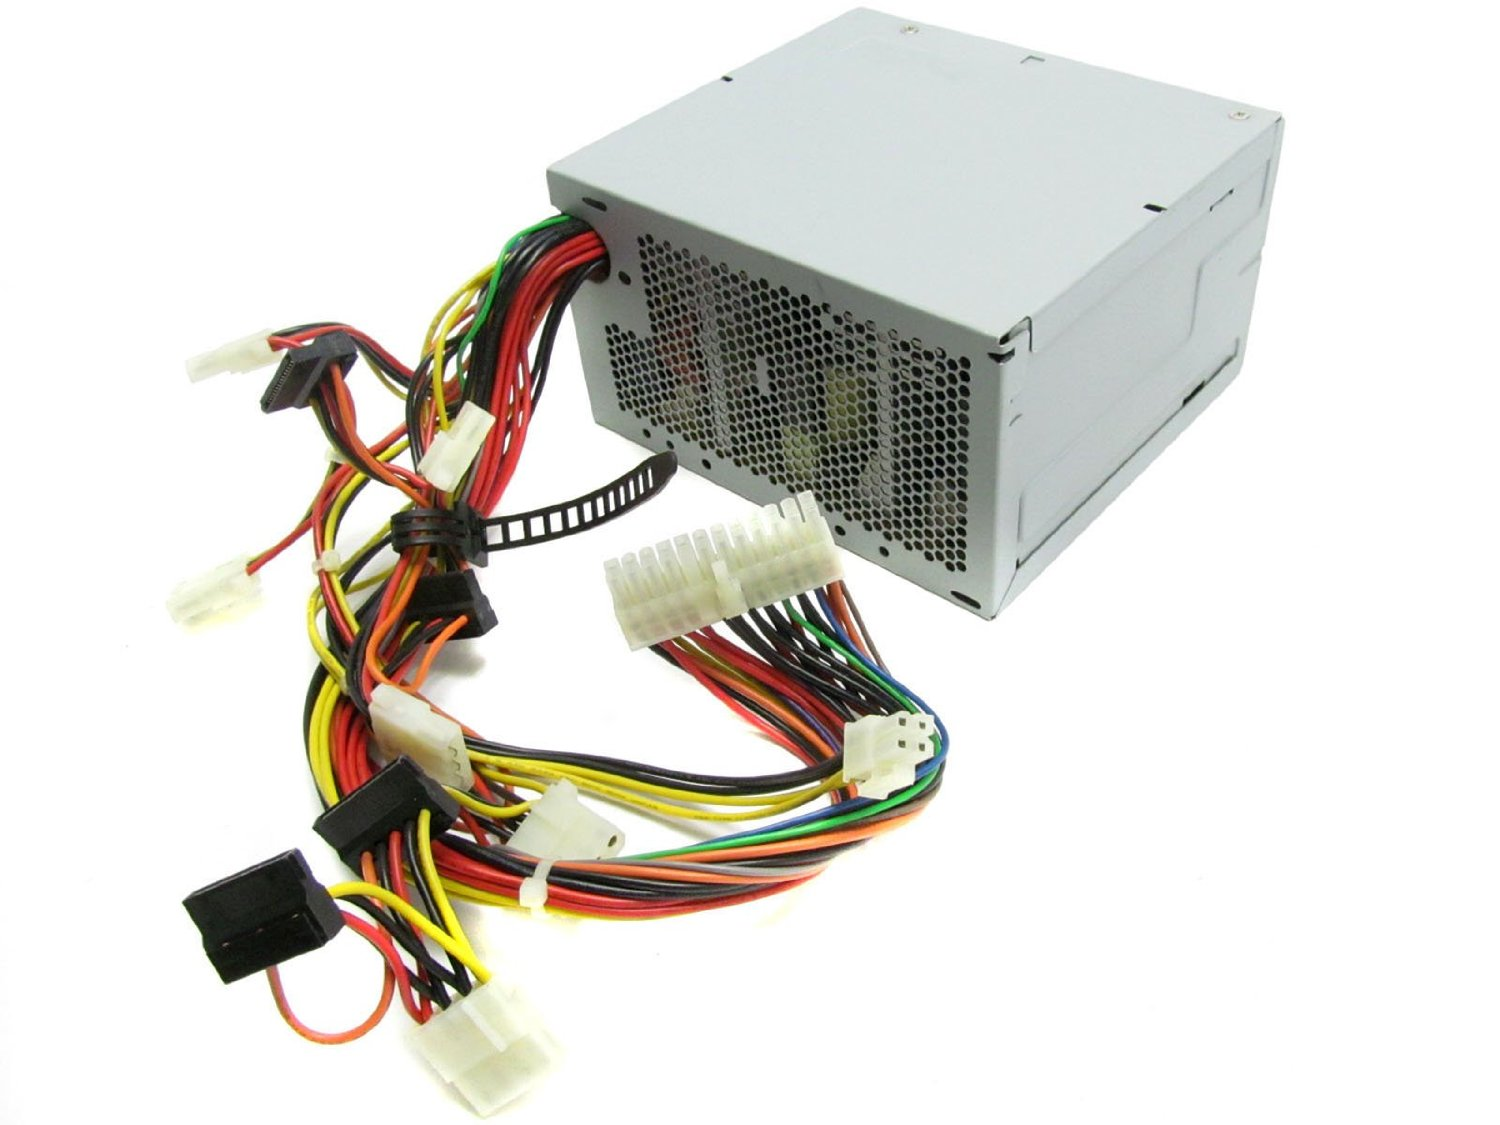 370-Watts power supply - With